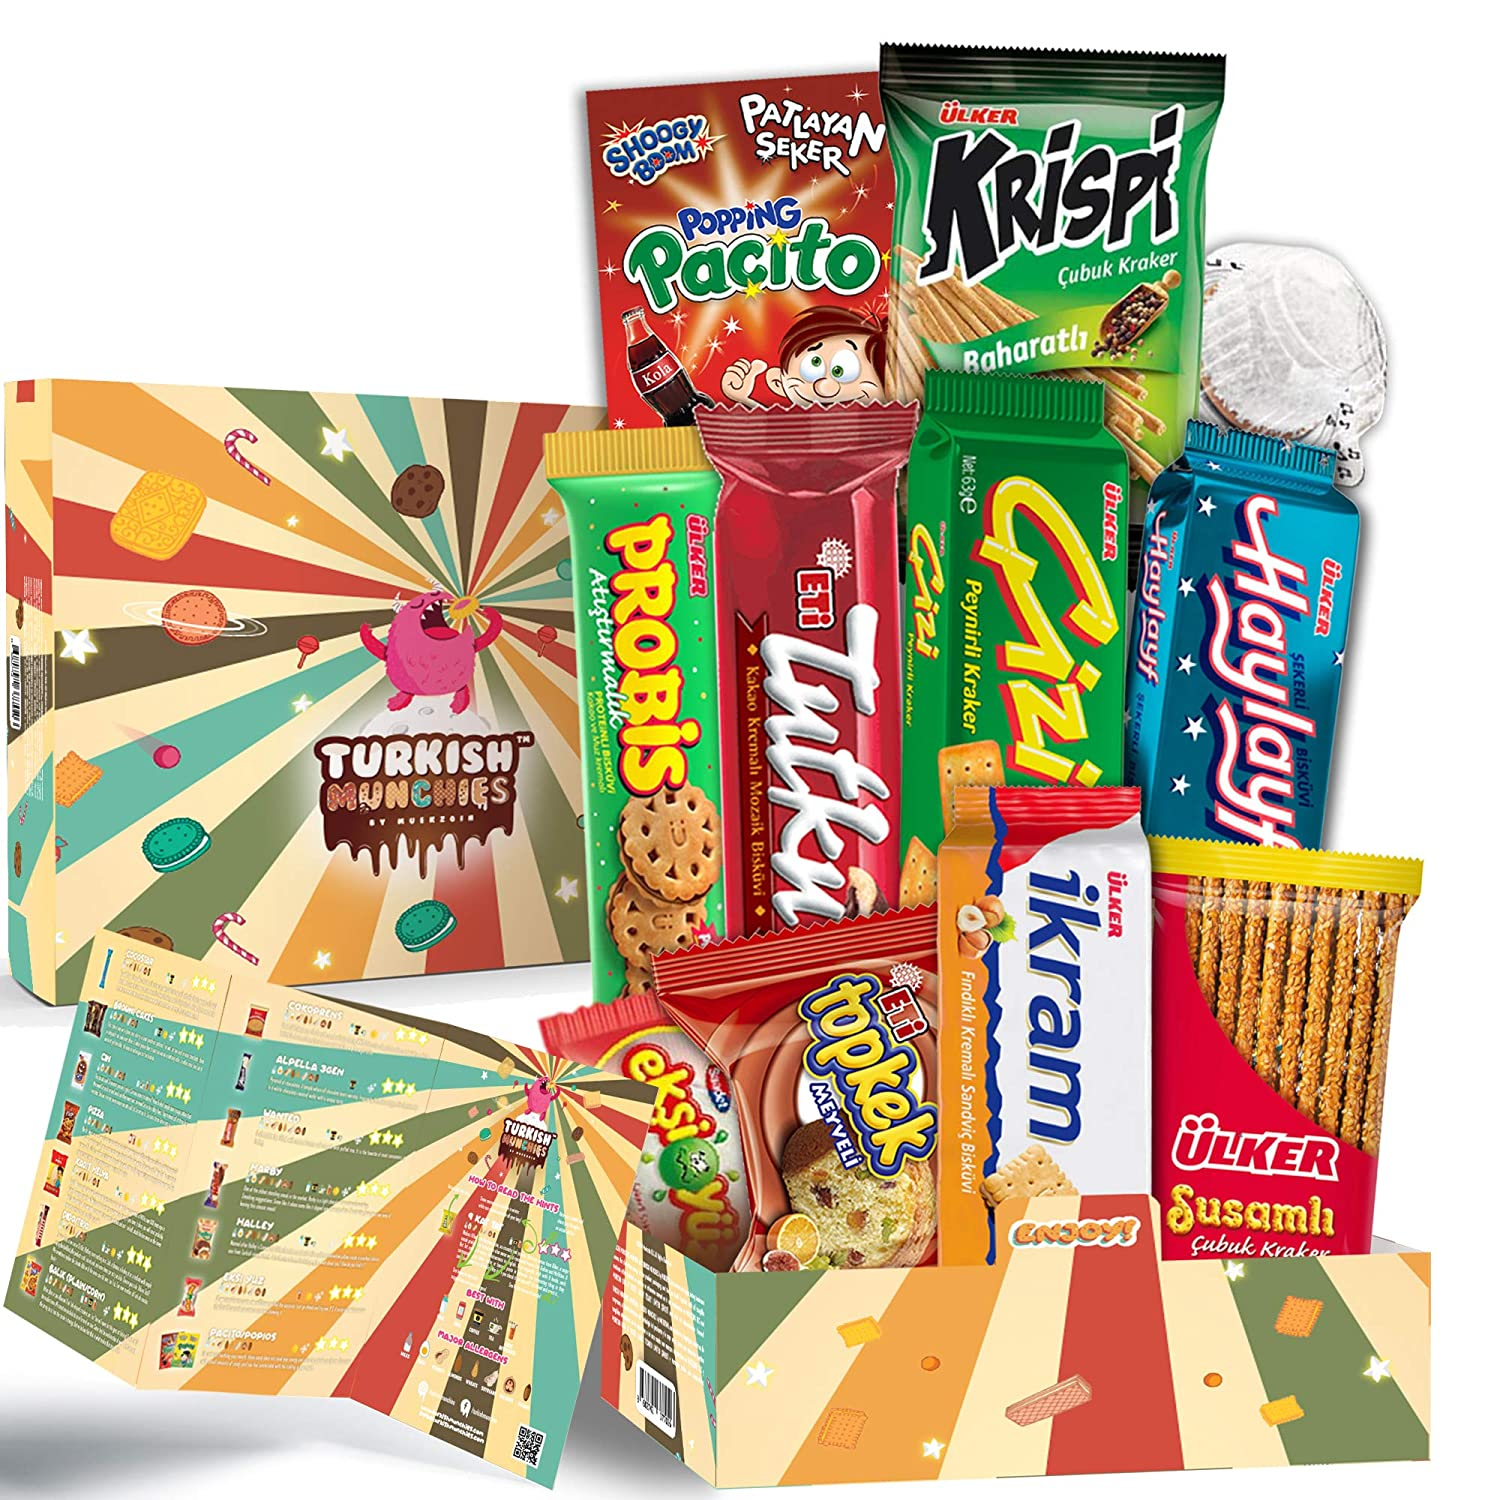 Retro Premium International Snacks Variety Pack Care Package, Ultimate Assortment of Turkish Treats, Mix variety pack of snacks, Foreign Candy or Foreign Snacks Box